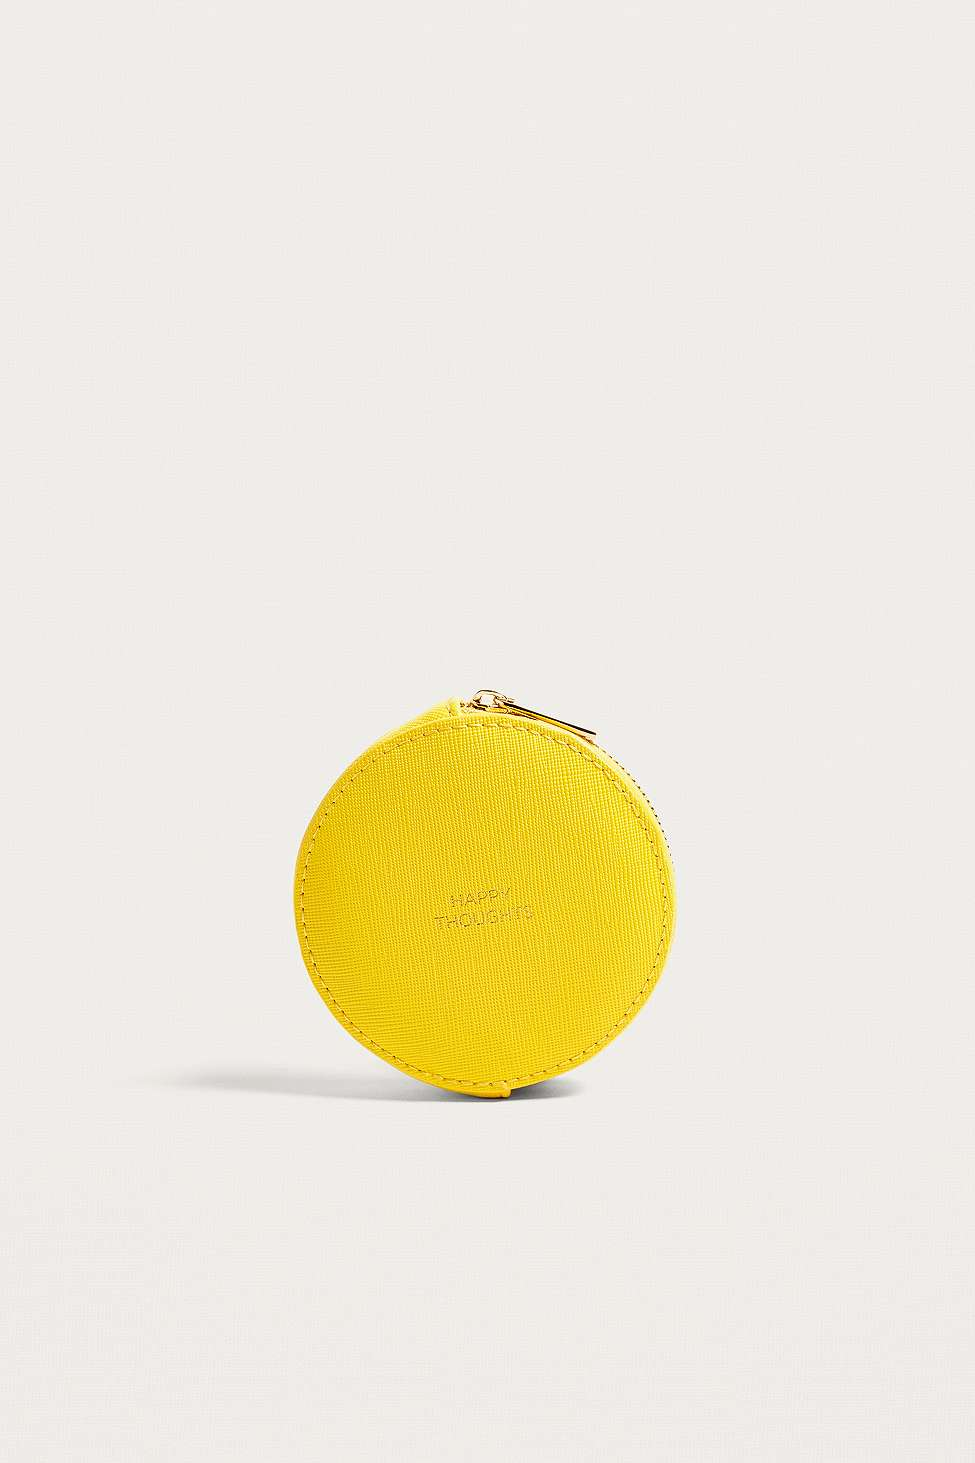 Estella Bartlett Happy Thoughts Yellow Circle Coin Purse, Yellow